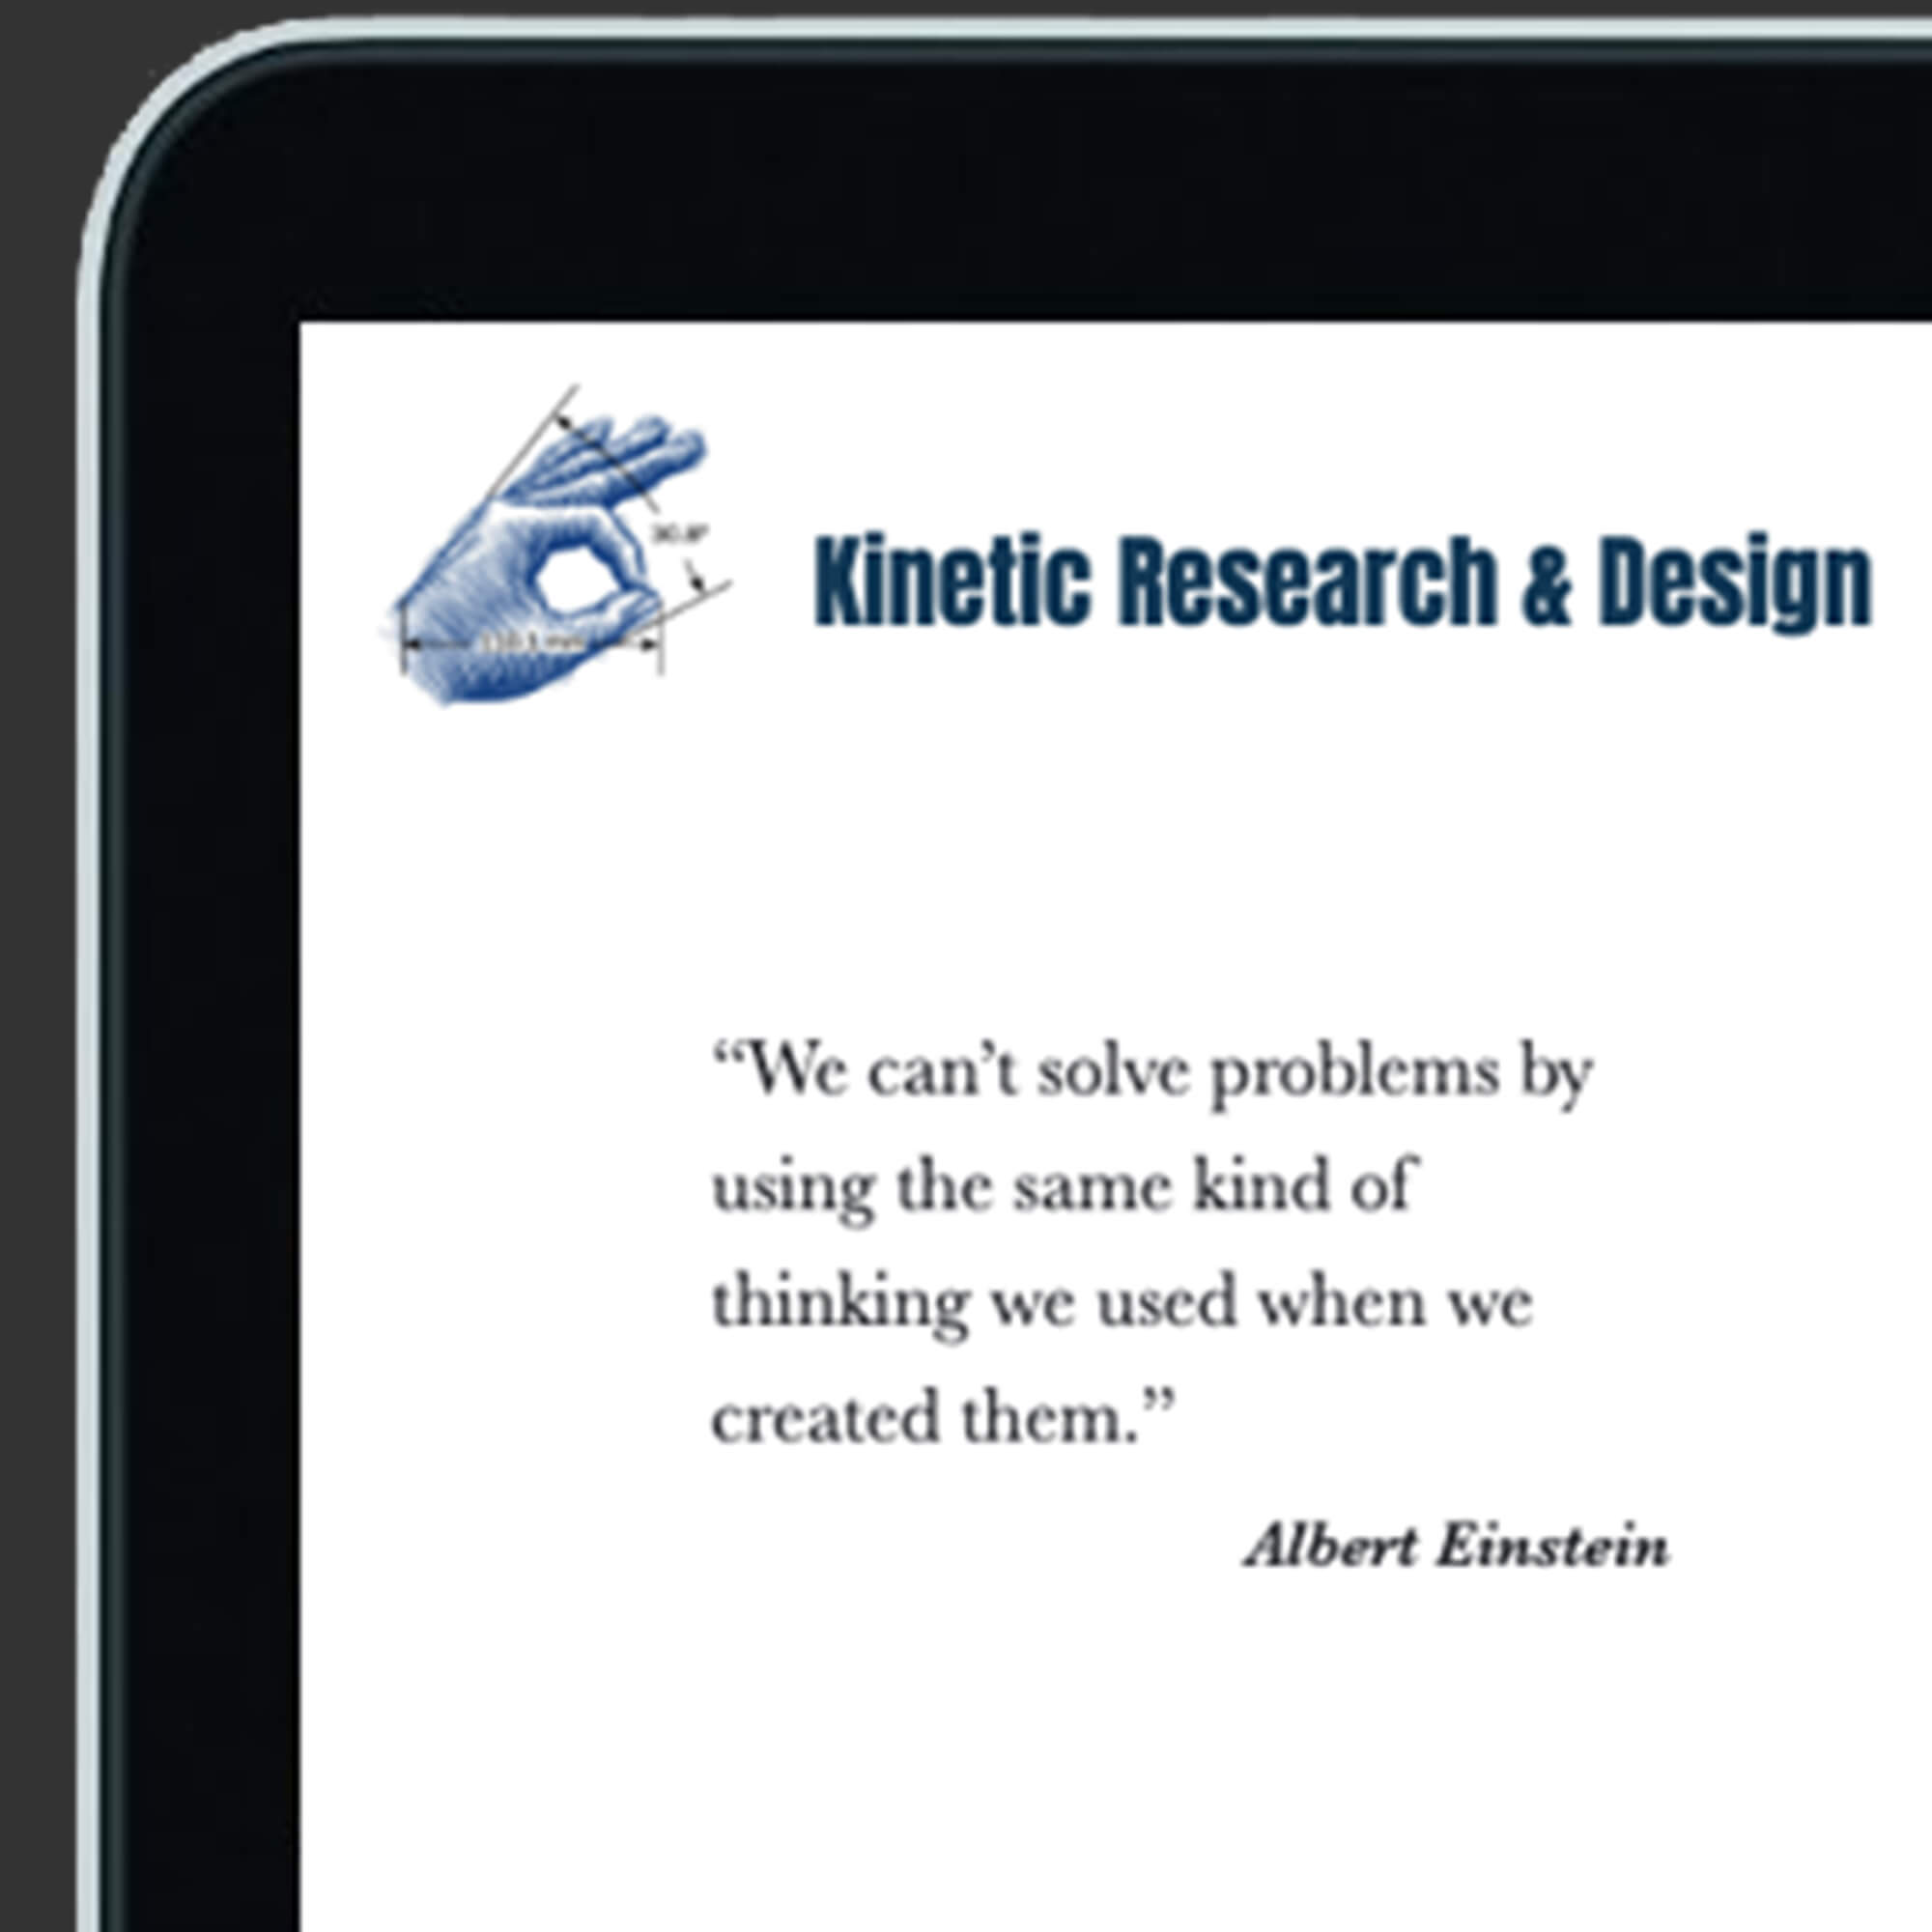 See my work for Kinetic Research & Design